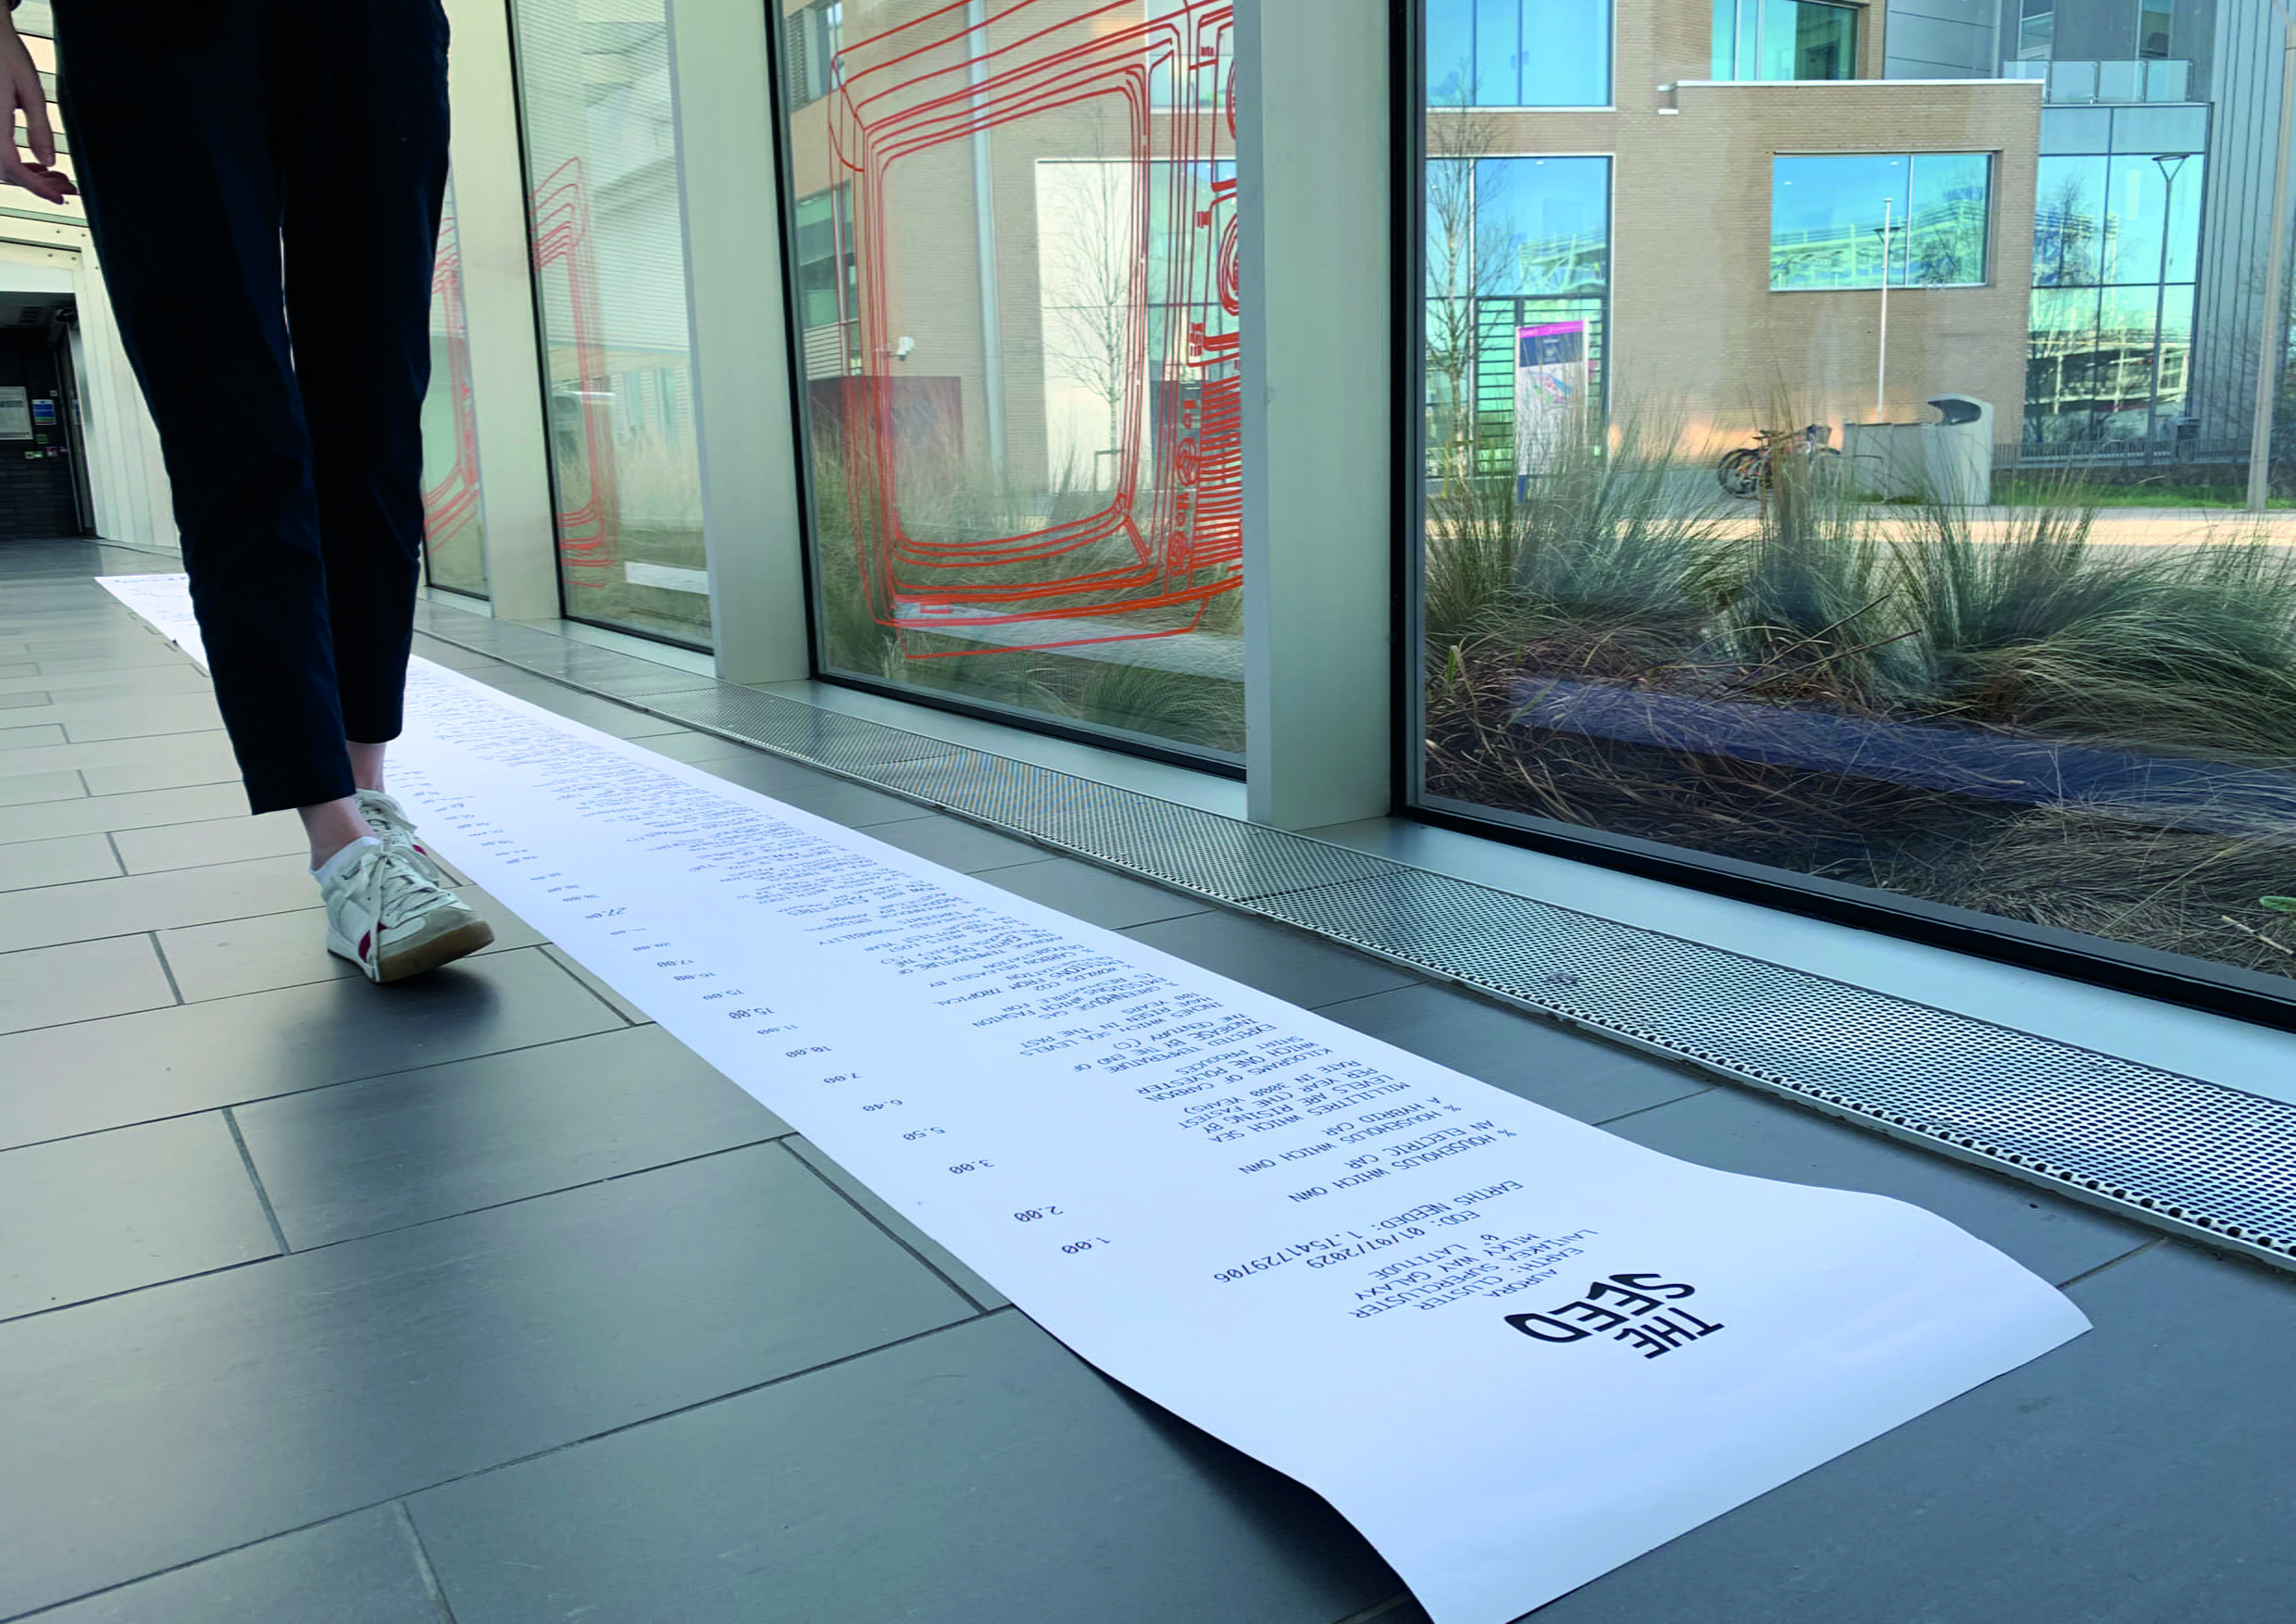 Receipt Installation: This represents the cost of human activities on the environment.